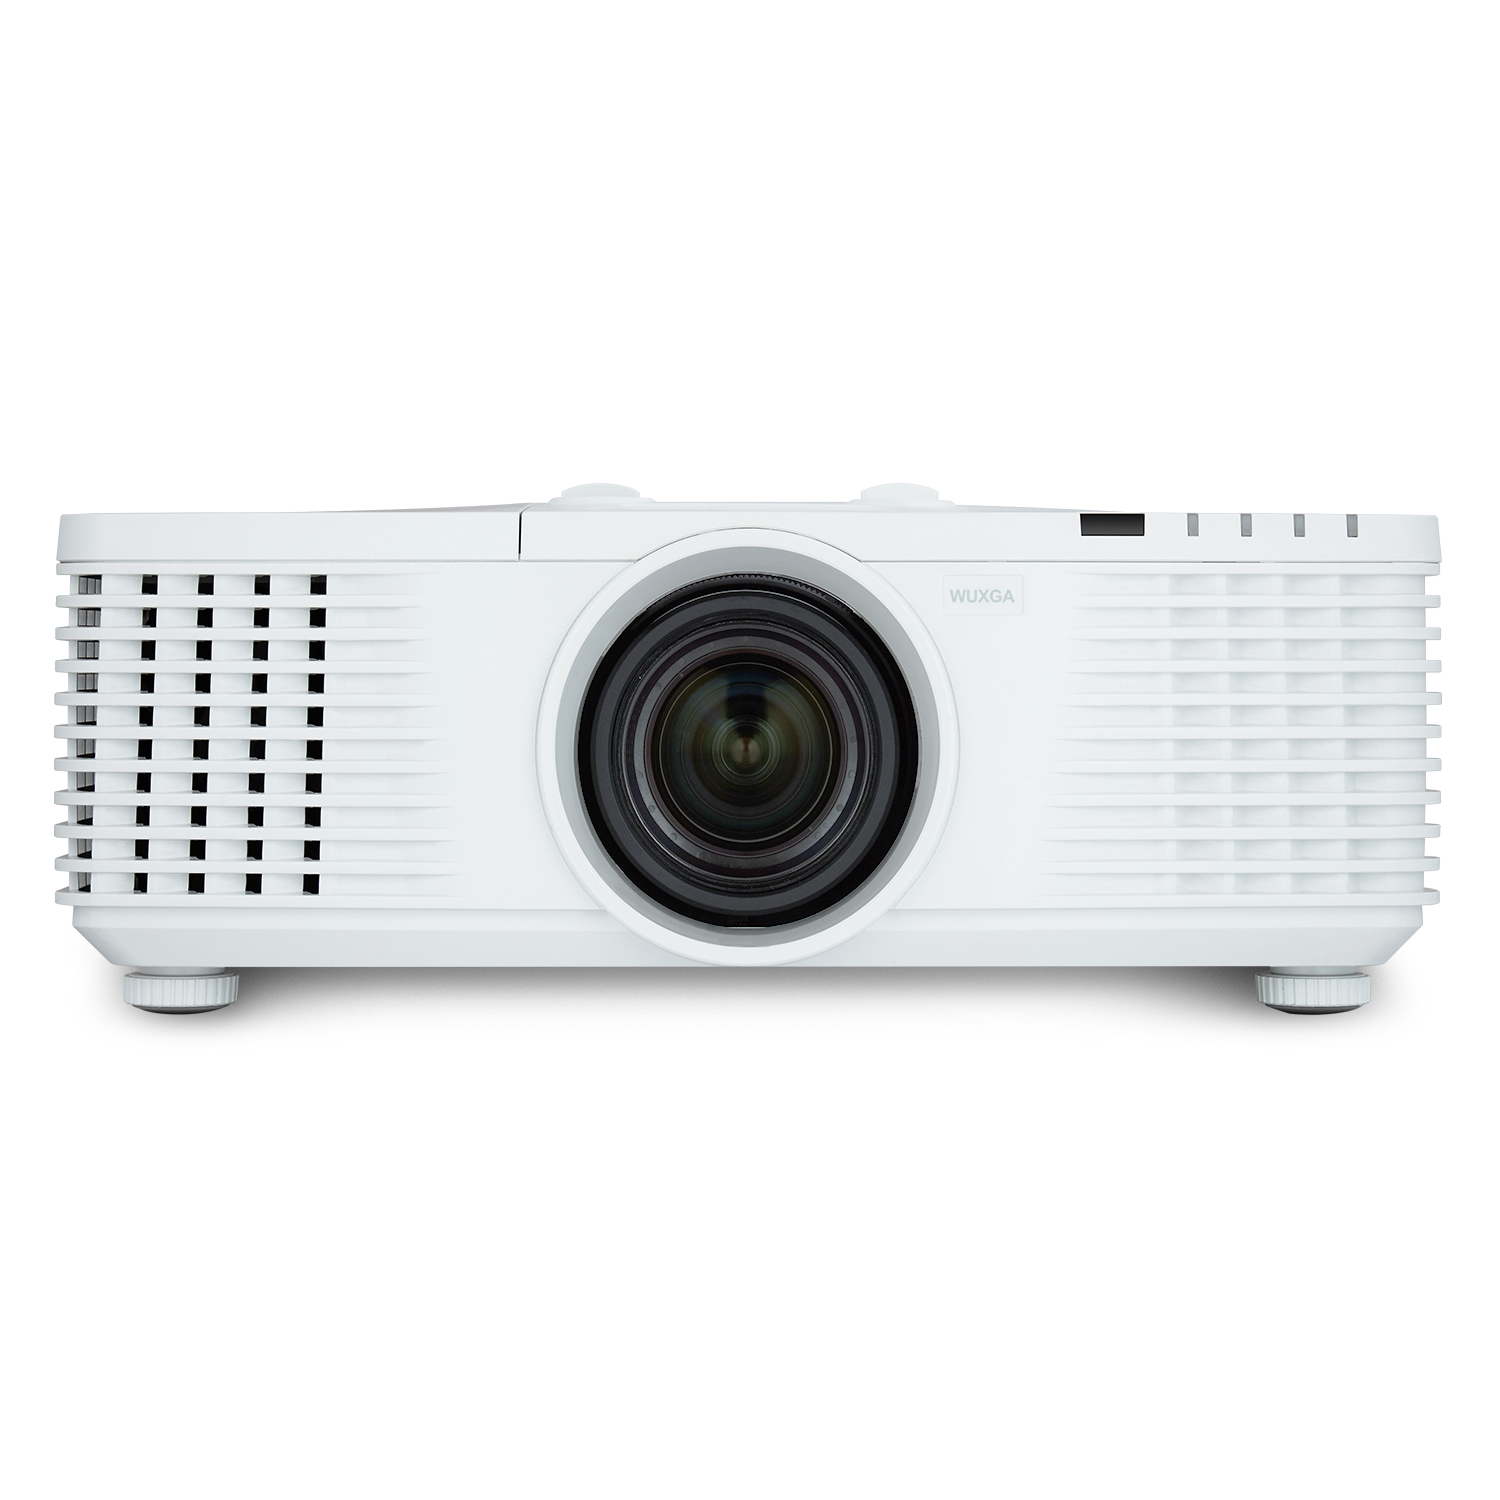 ViewSonic PRO9800WUL 5500lm WUXGA Professional Installation Projector